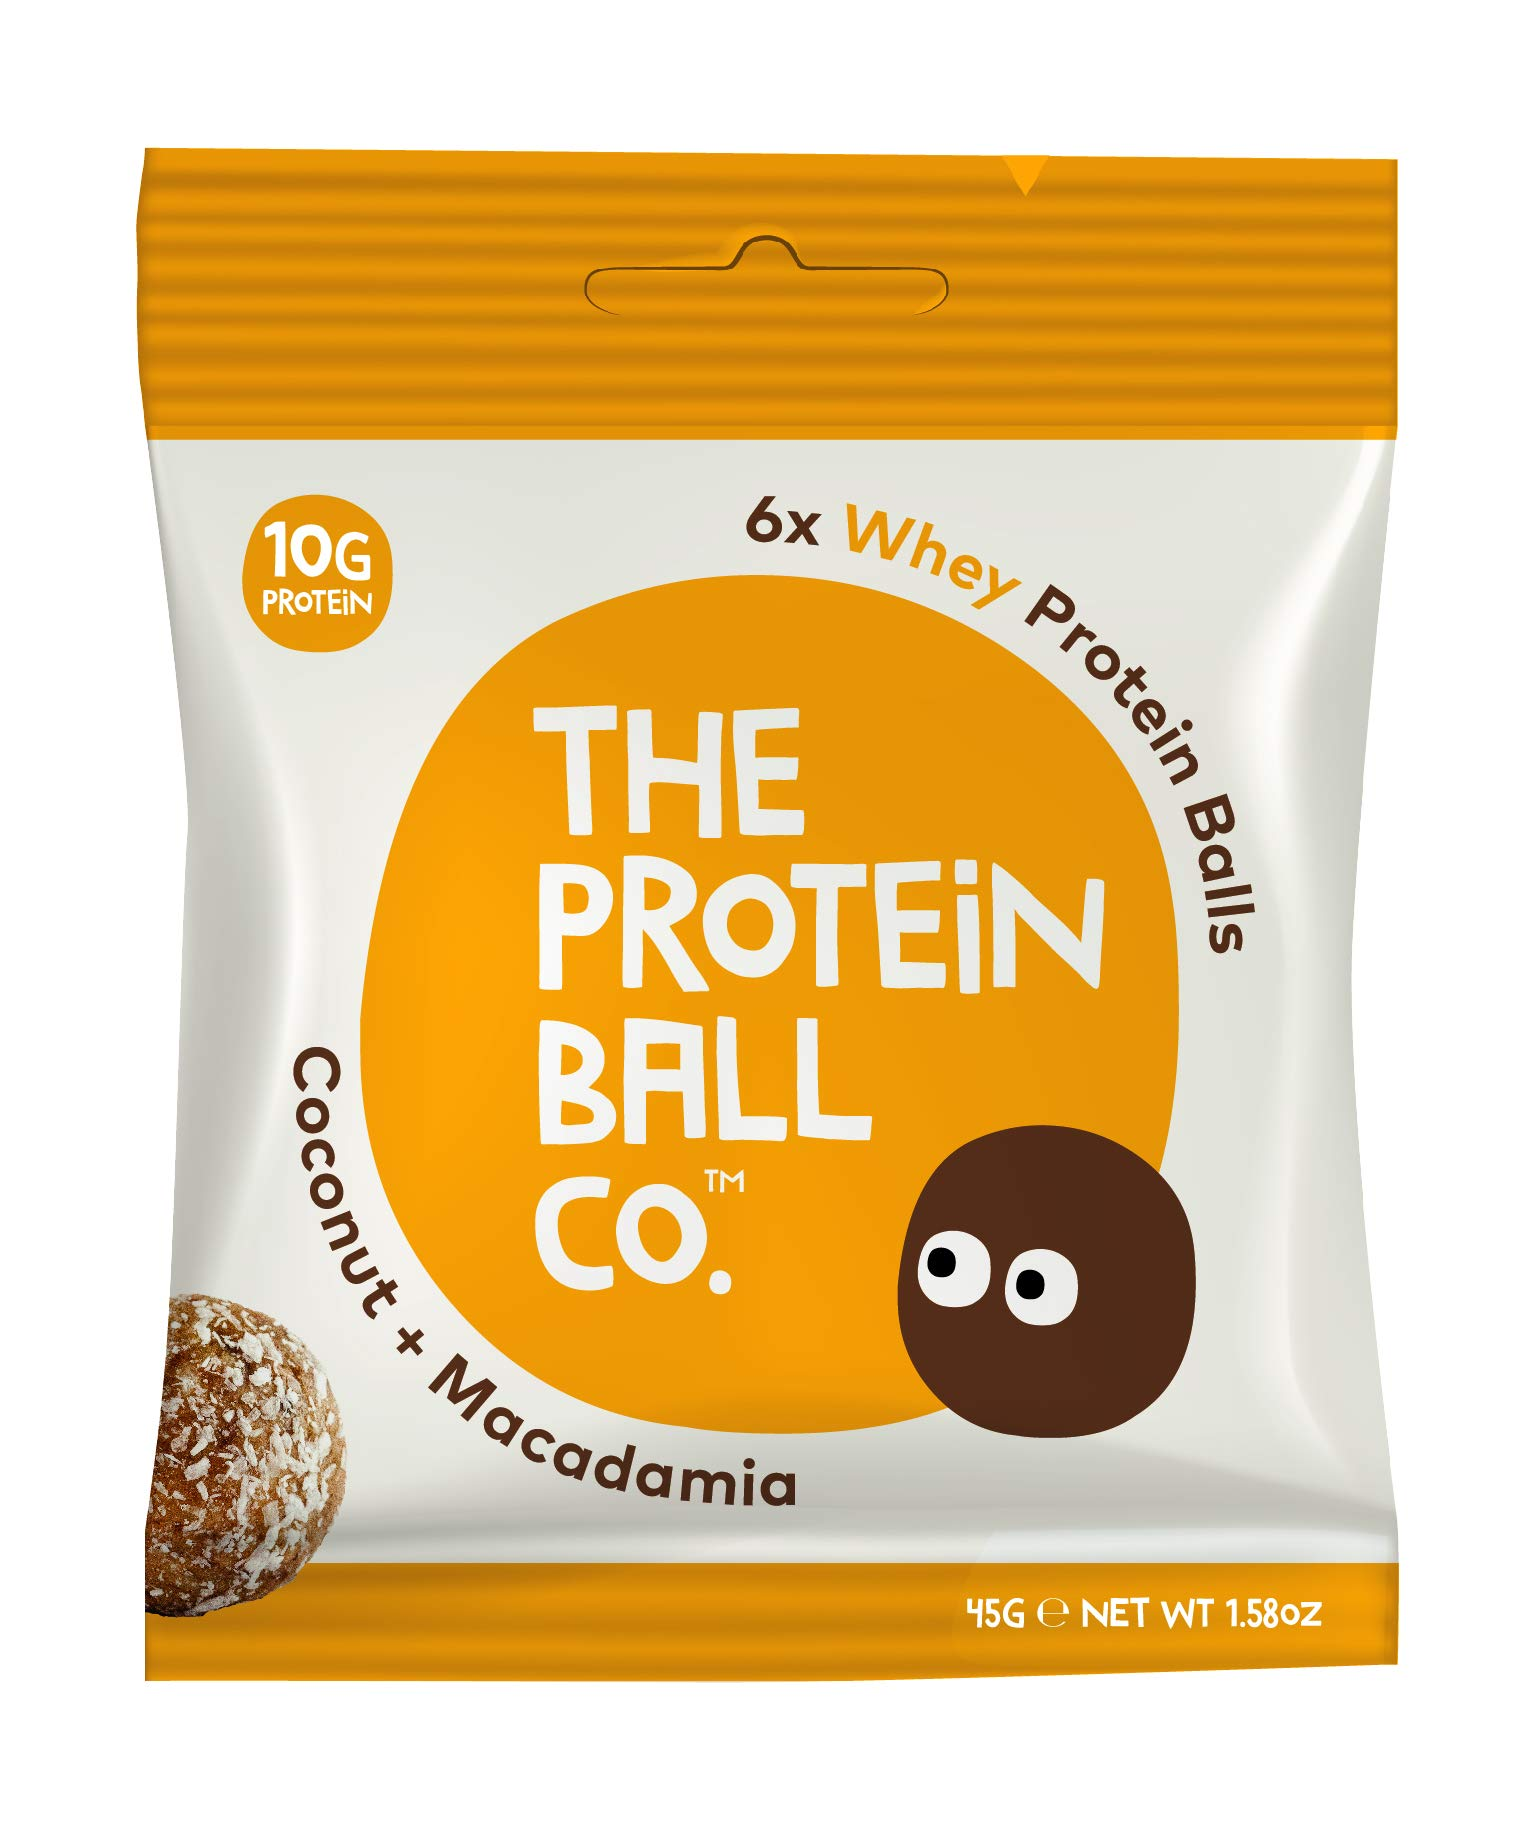 The Protein Ball Co. Keto Whey Protein Bites | 10 Pack | Coconut Macadamia | All Natural, Gluten Free, Vegetarian, Non GMO, Healthy High Protein Snacks, No Added Sugar